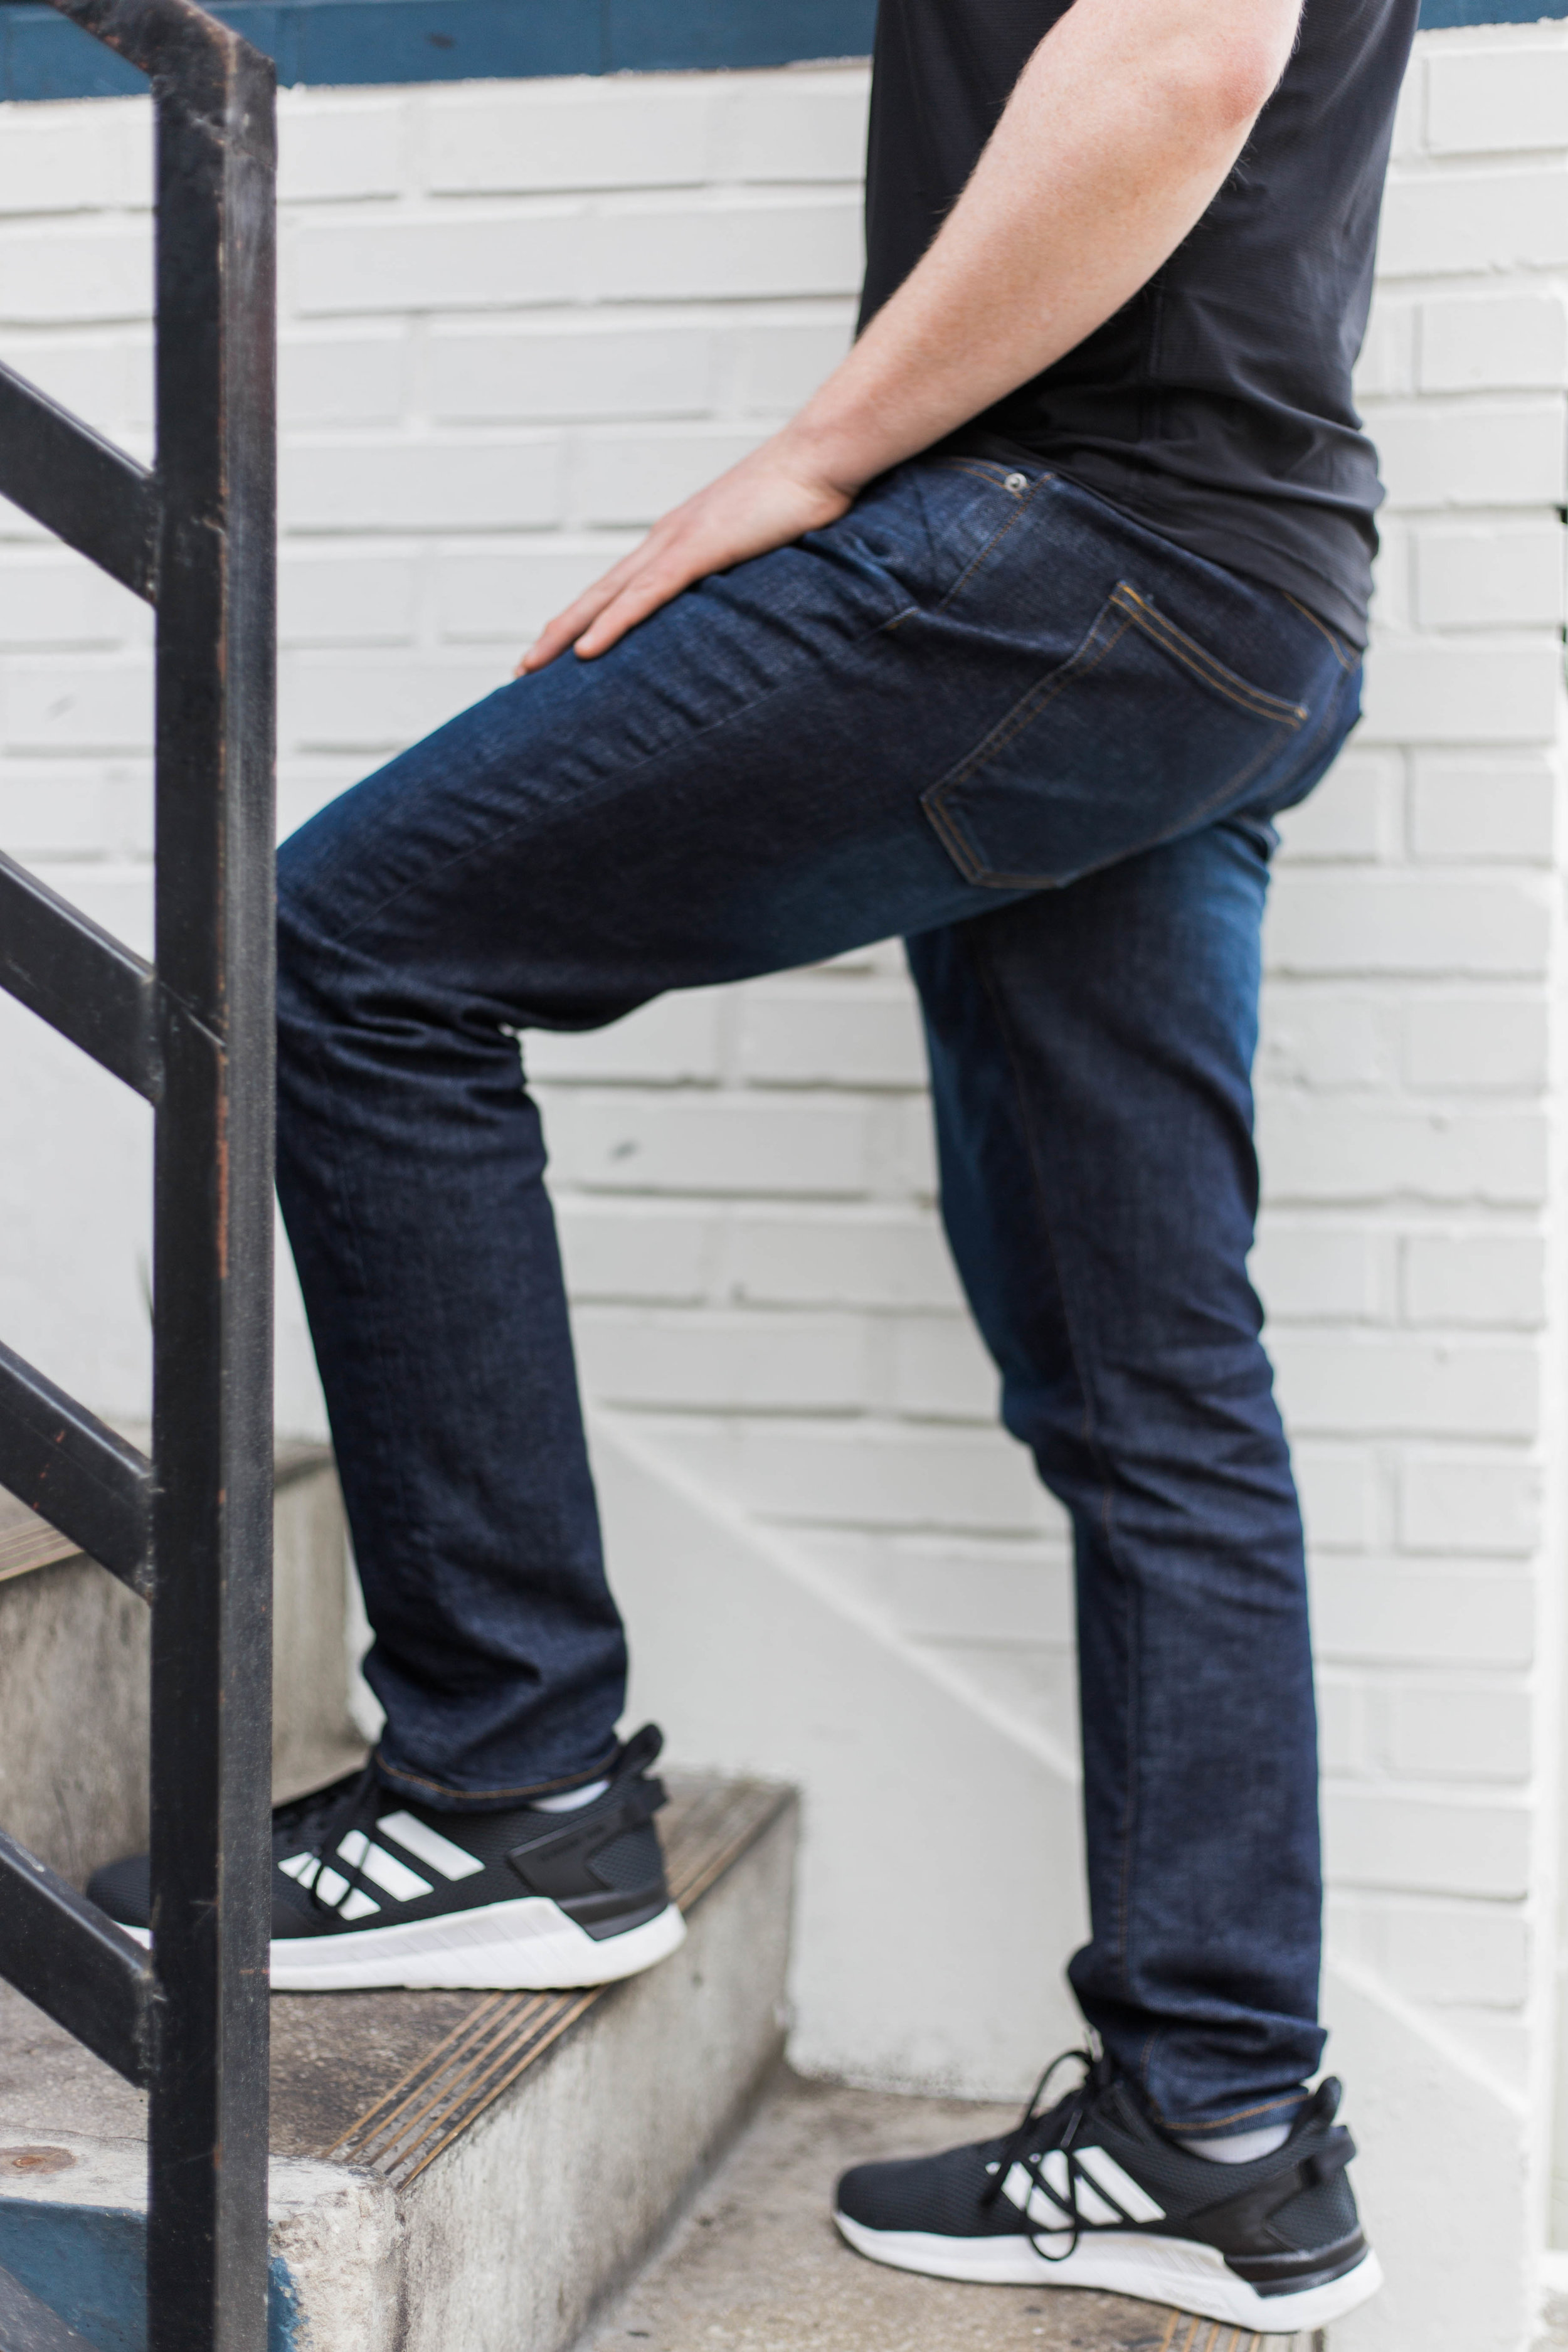 When You Shouldn't Wear Jeans: Essential Rules Distilled Down to an Easy Guide | On the Street Where We Live (aretherelilactrees.com)  DSTLD, denim, jeans, men's fashion, men's style